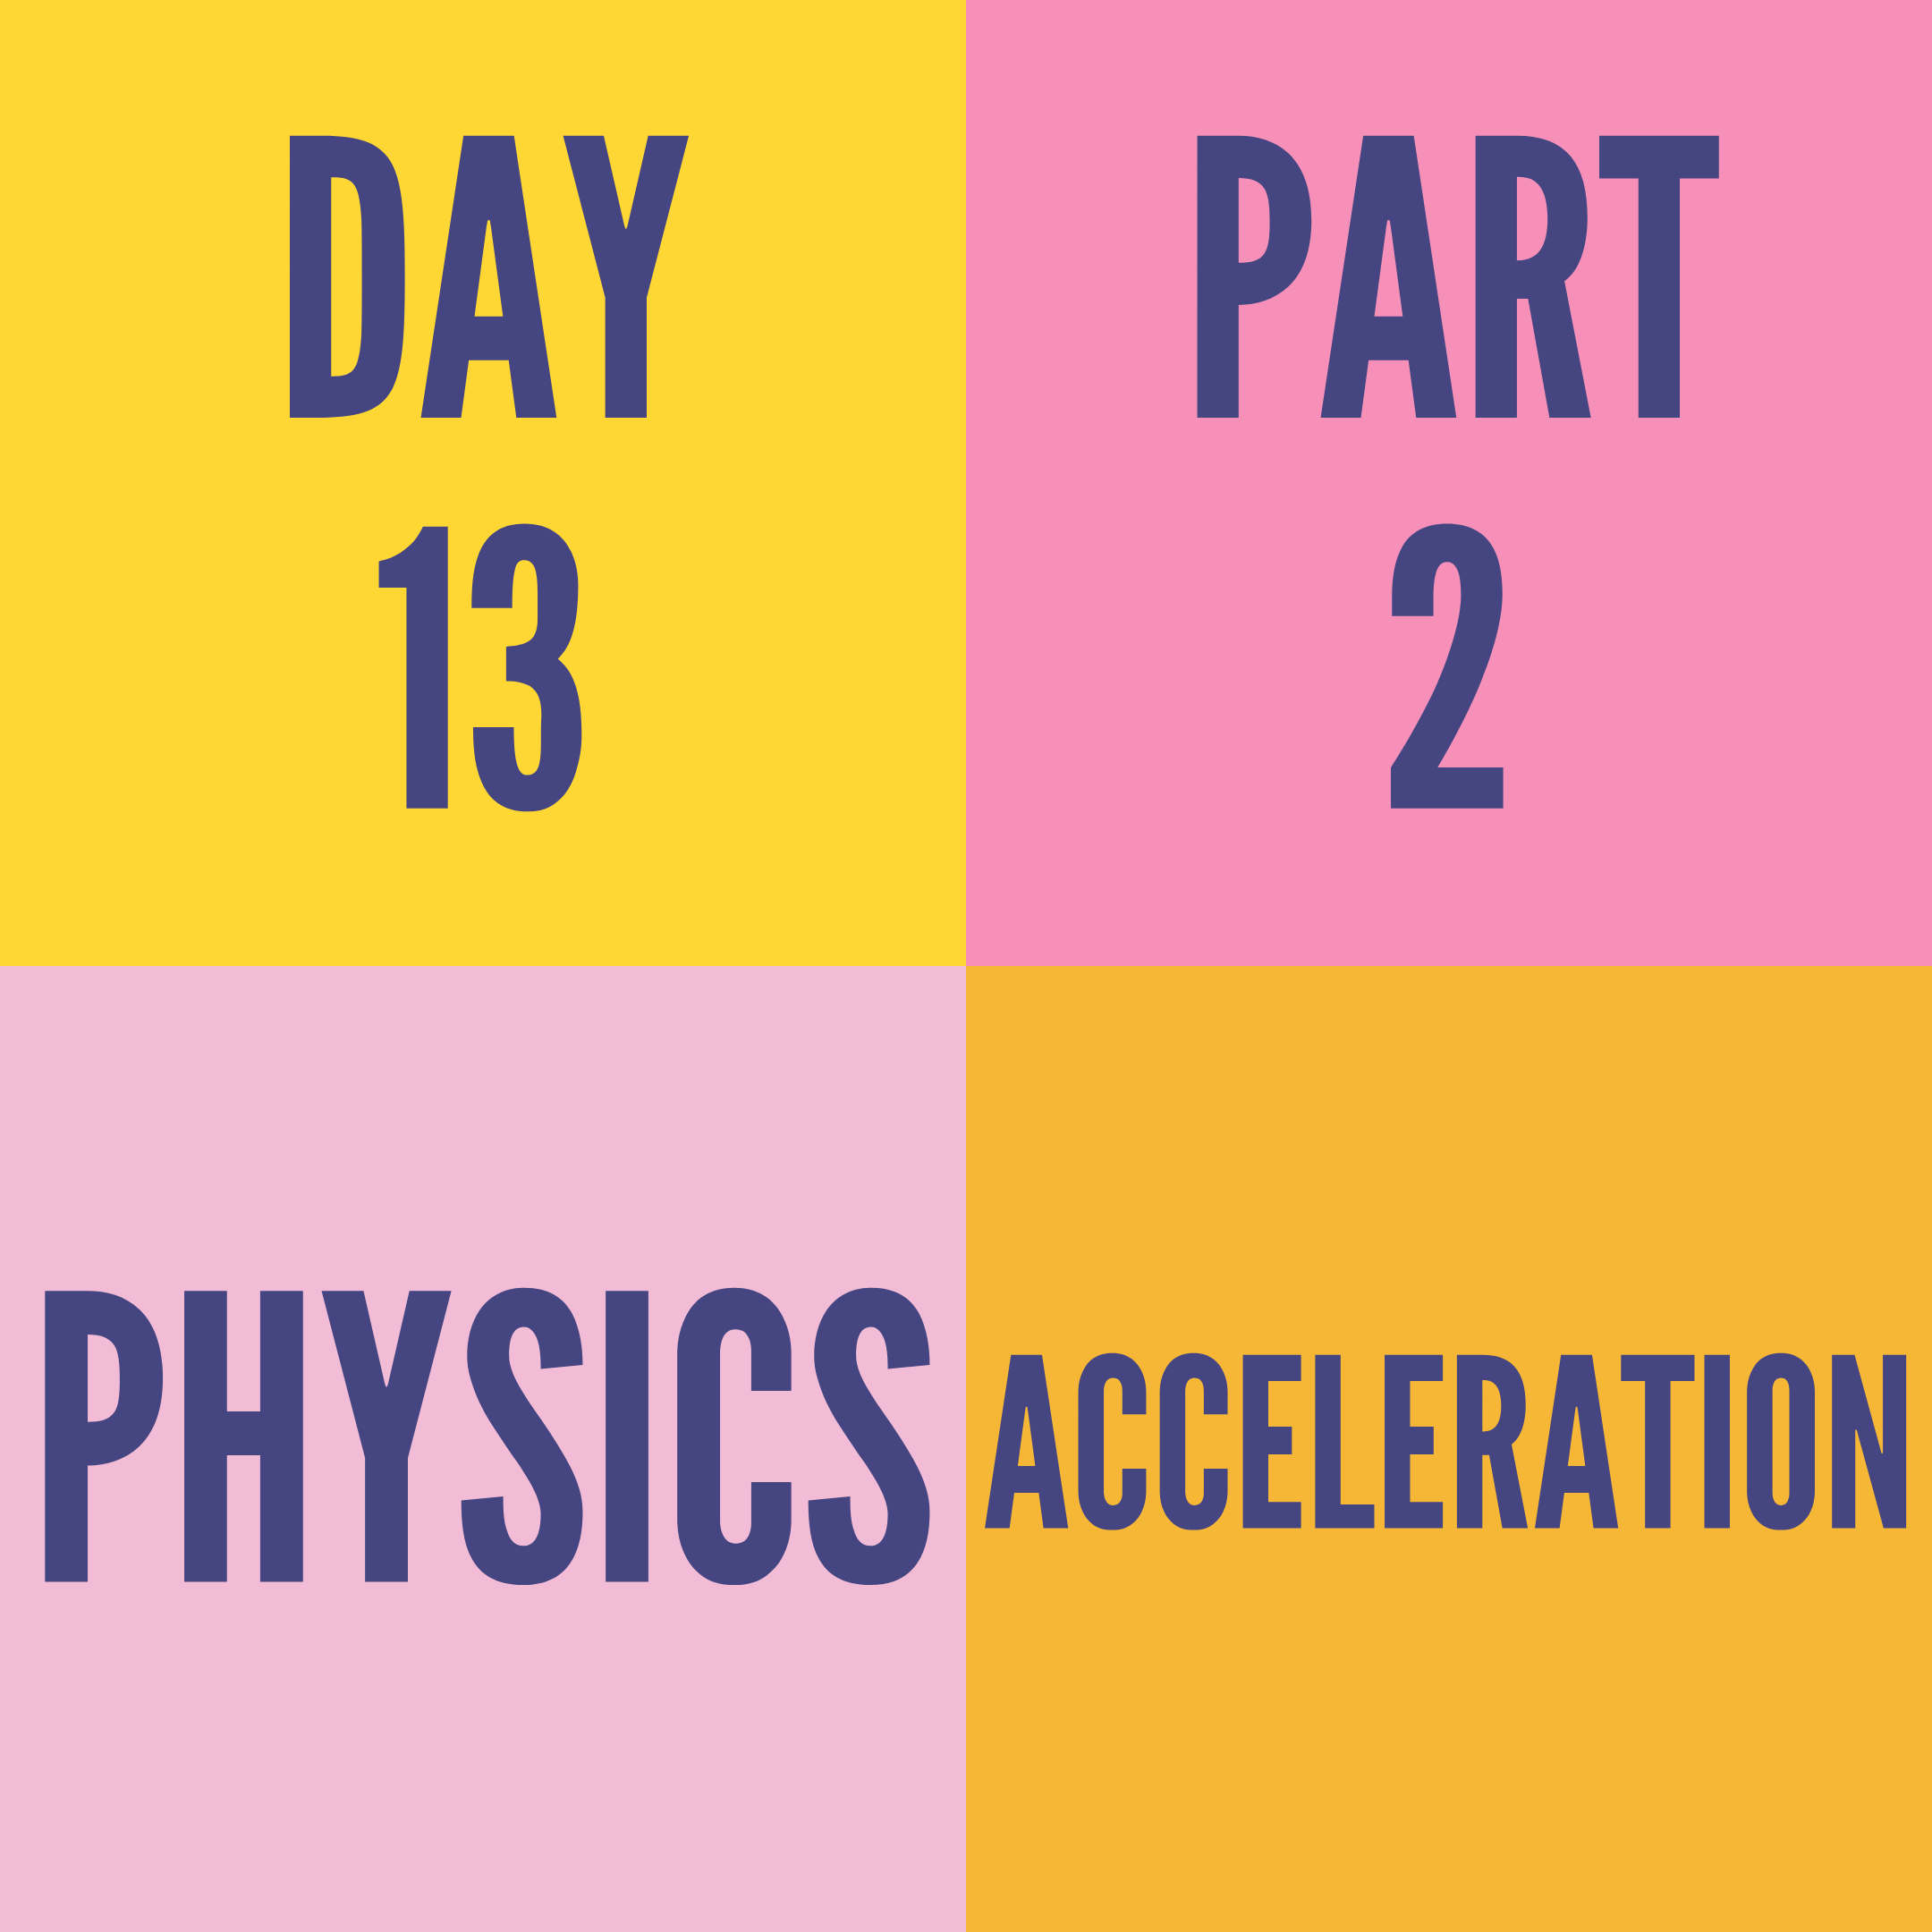 DAY-13 PART-2 ACCELERATION